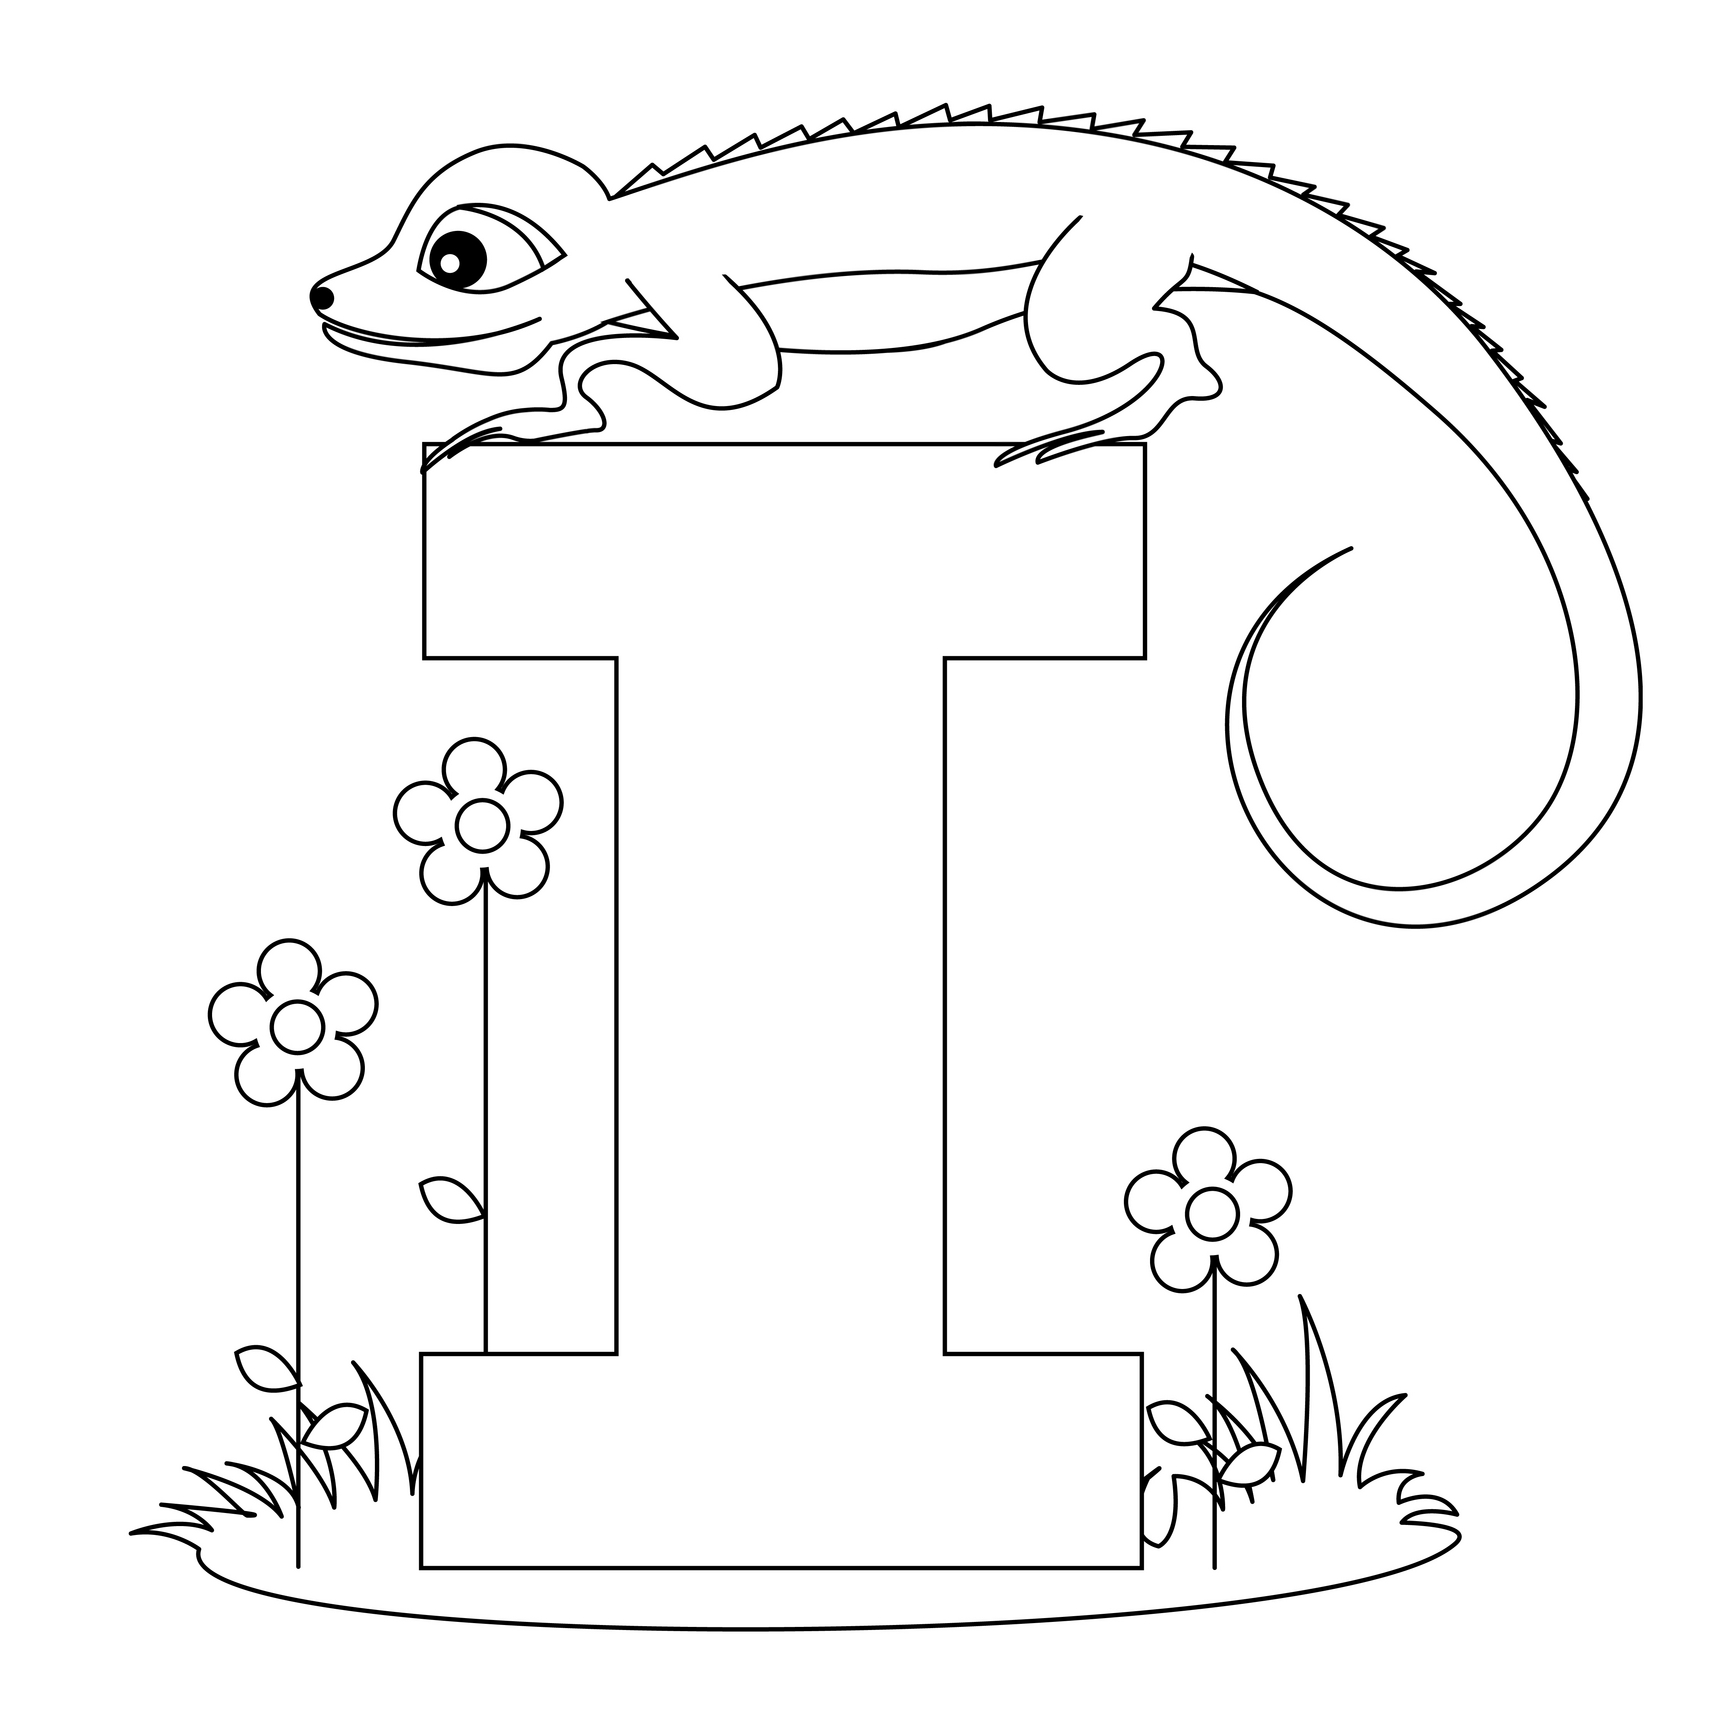 Printable alphabet worksheets letter i for iguana for for Free alphabet coloring pages for toddlers